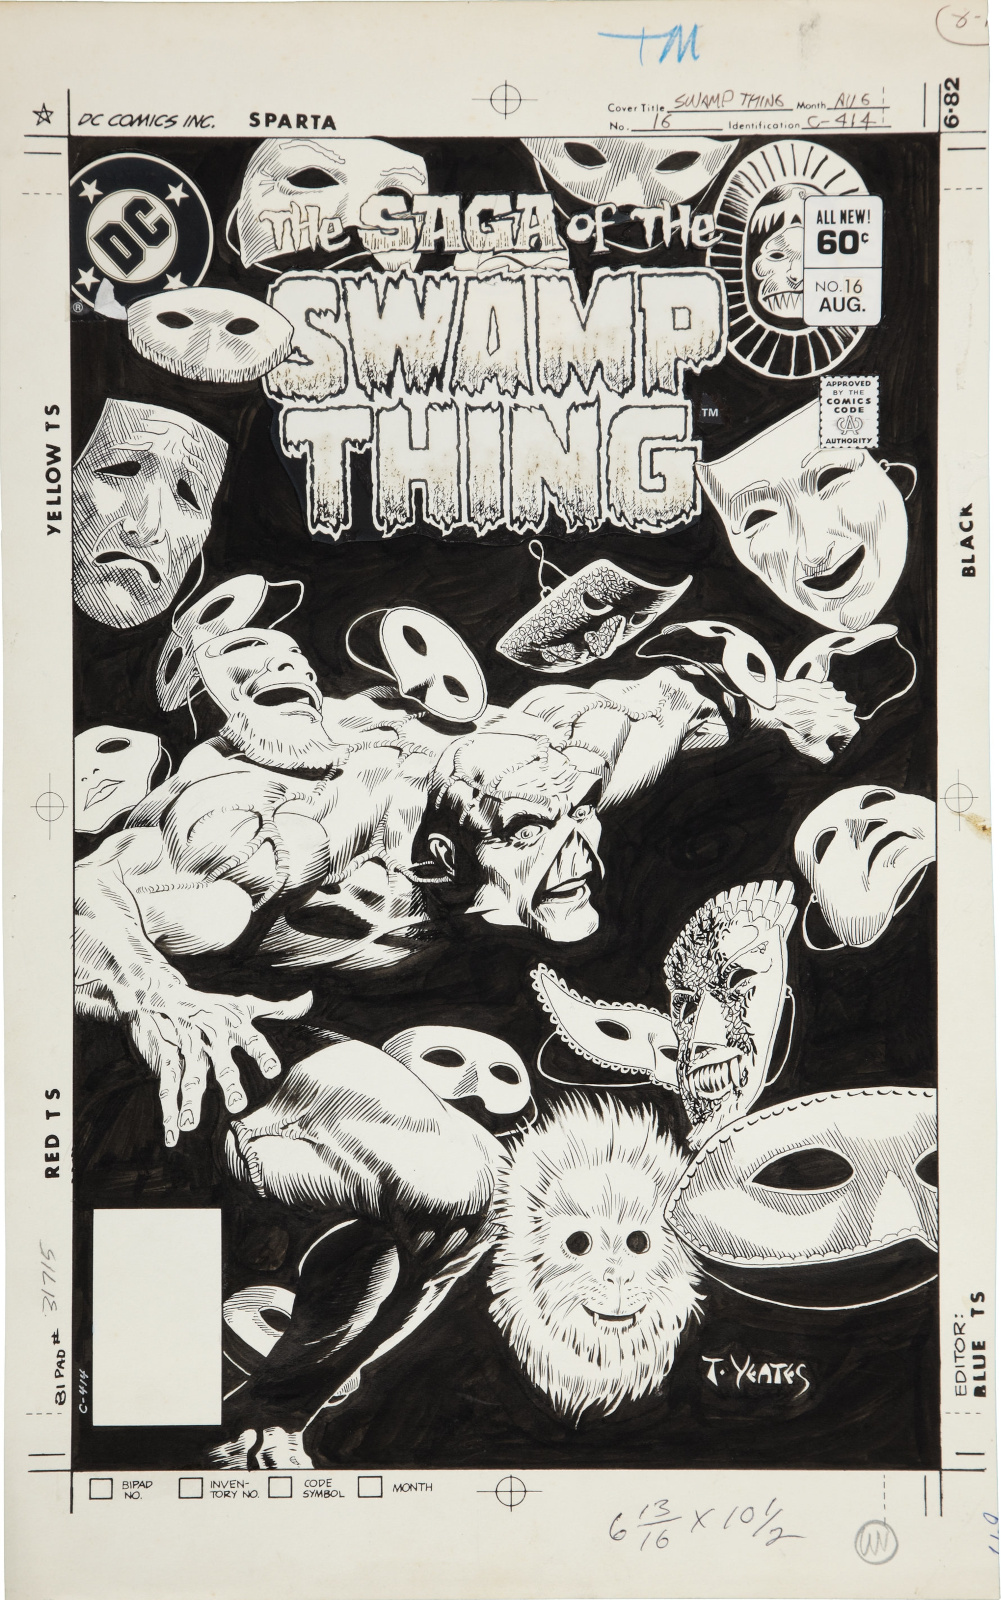 Saga of the Swamp Thing issue 16 cover by Tom Yeates